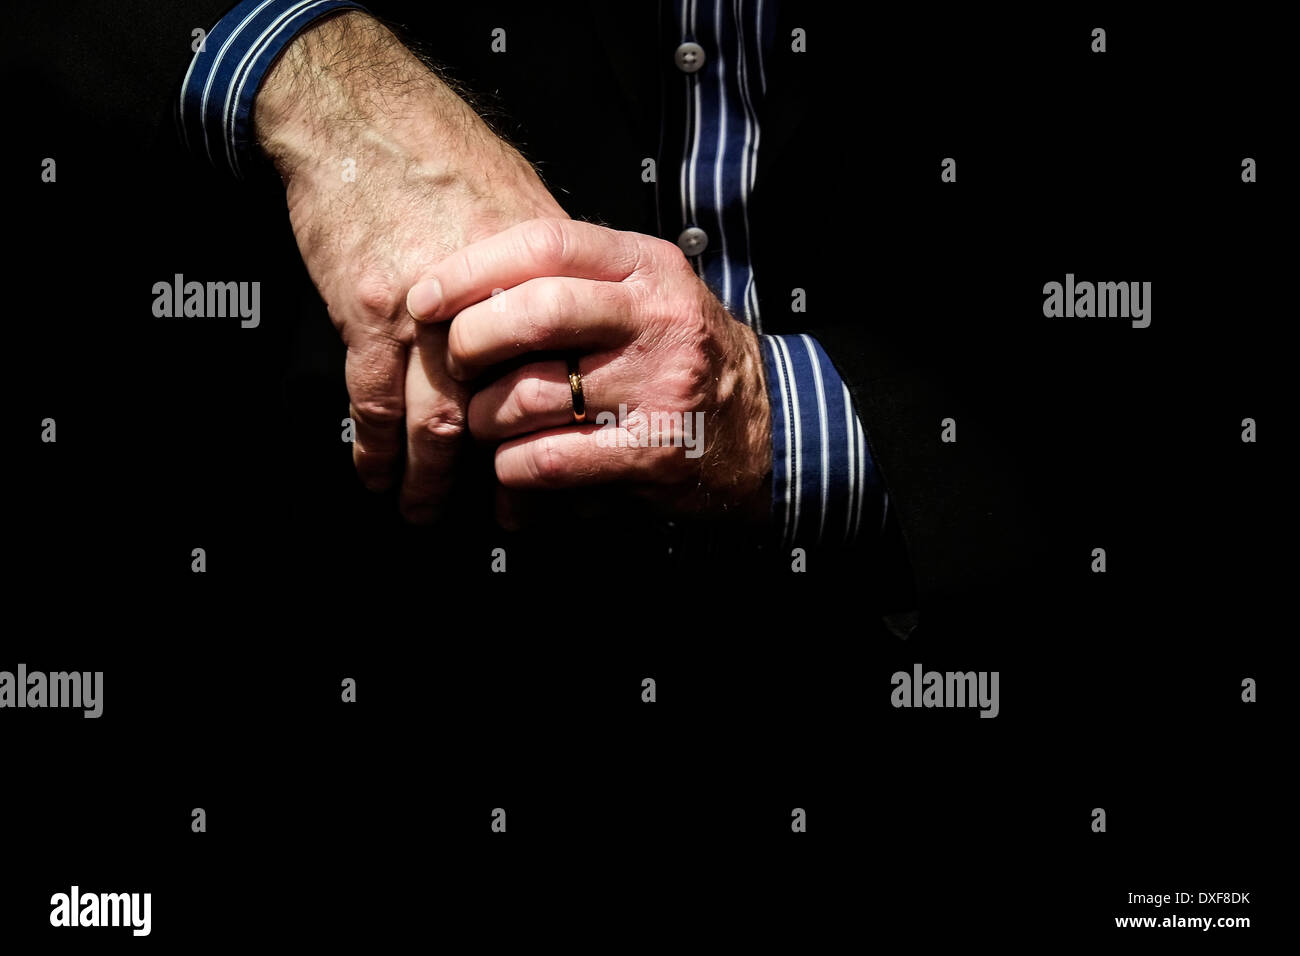 Clasped hands. - Stock Image